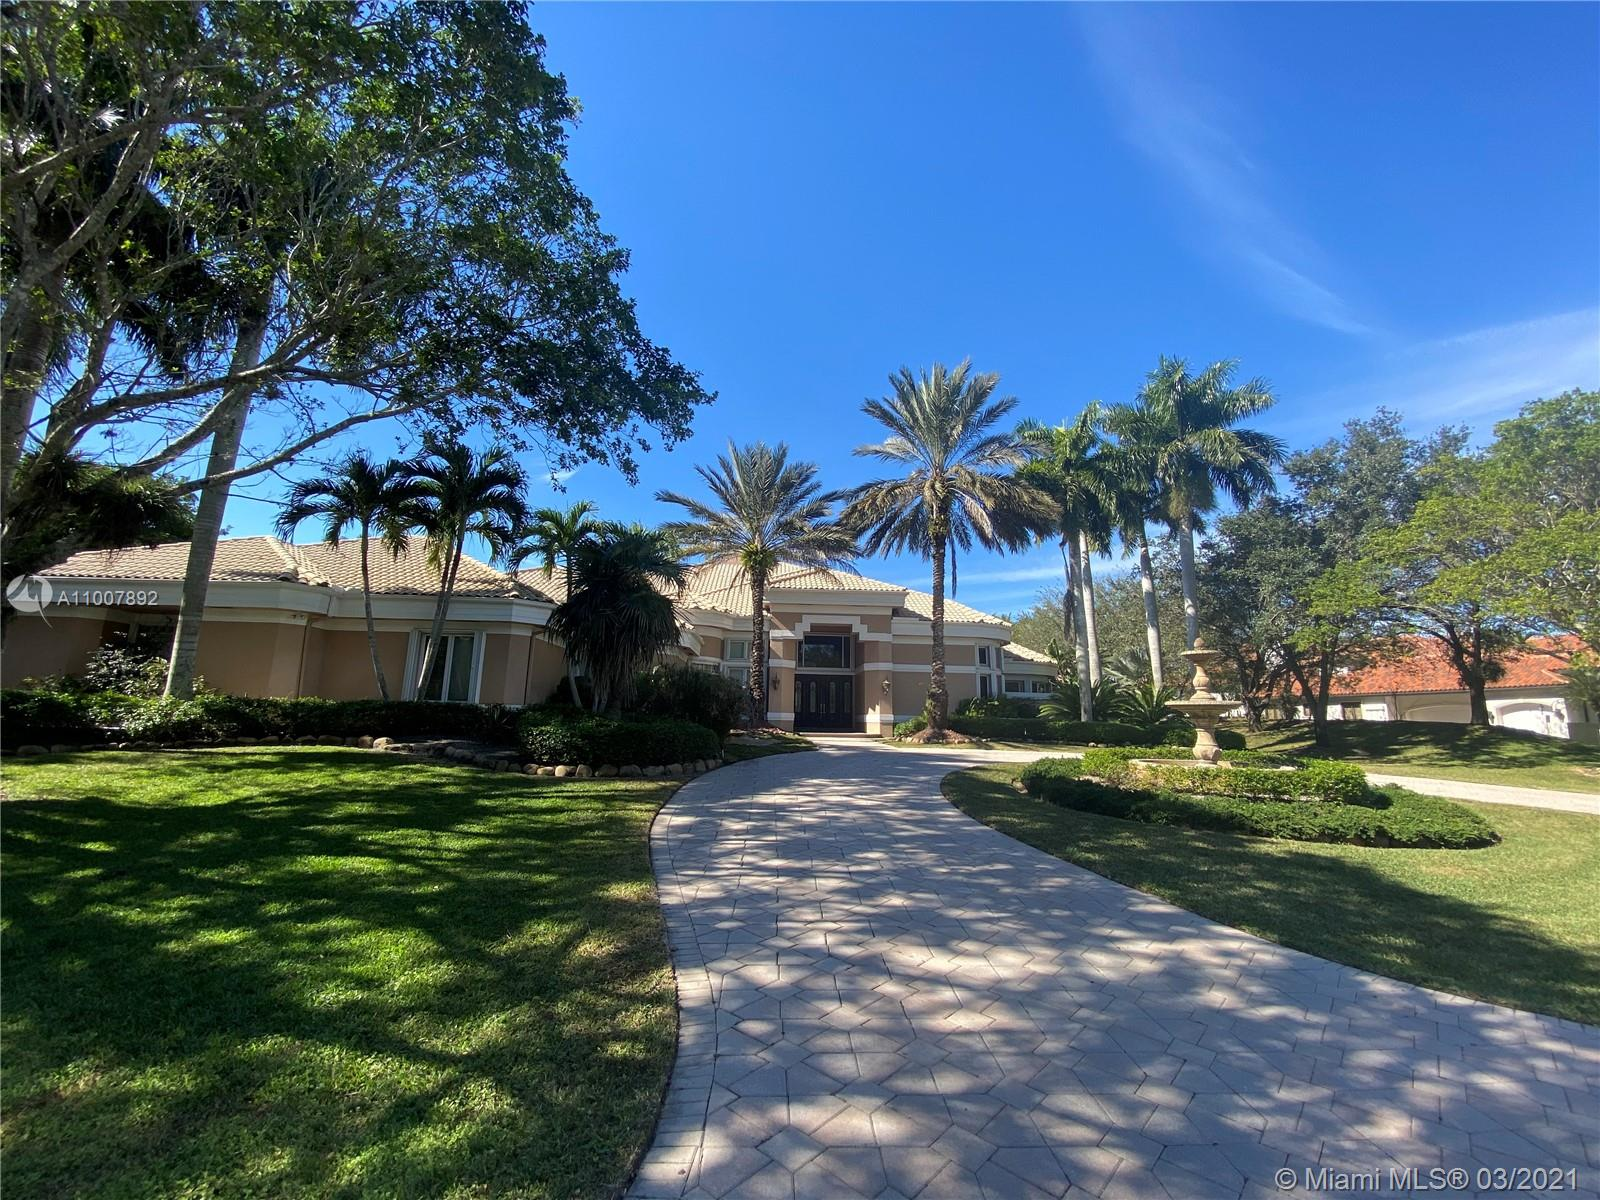 Gorgeous One Story Home at The Exclusive Gated Community Windmill Ranch Estates. One of the Best Waterfront Properties. Spectaculars Sunsets. Great Layout, Tall Ceilings w Glass Doors and Windows overlooking the Pool and Lake. 6BED/6BATH, Office, Laundry Room, Wet Bar, Marble and Hard Wood Floors, Gourmet kitchen, Stainless Steel Appliances, Viking Gas Range, Two Electric Ovens, Food Warmer Drawer, Sub Zero Refrigerator, Ice maker, Storm Impact French Doors, Accordion Shutters, 3 Car Garage, 4 A/C, Spacious Master Bedroom with two walking closets, Electric Shades . Fully fenced Lot. Covered patio excellent for entertainment. Municipal Sewer.